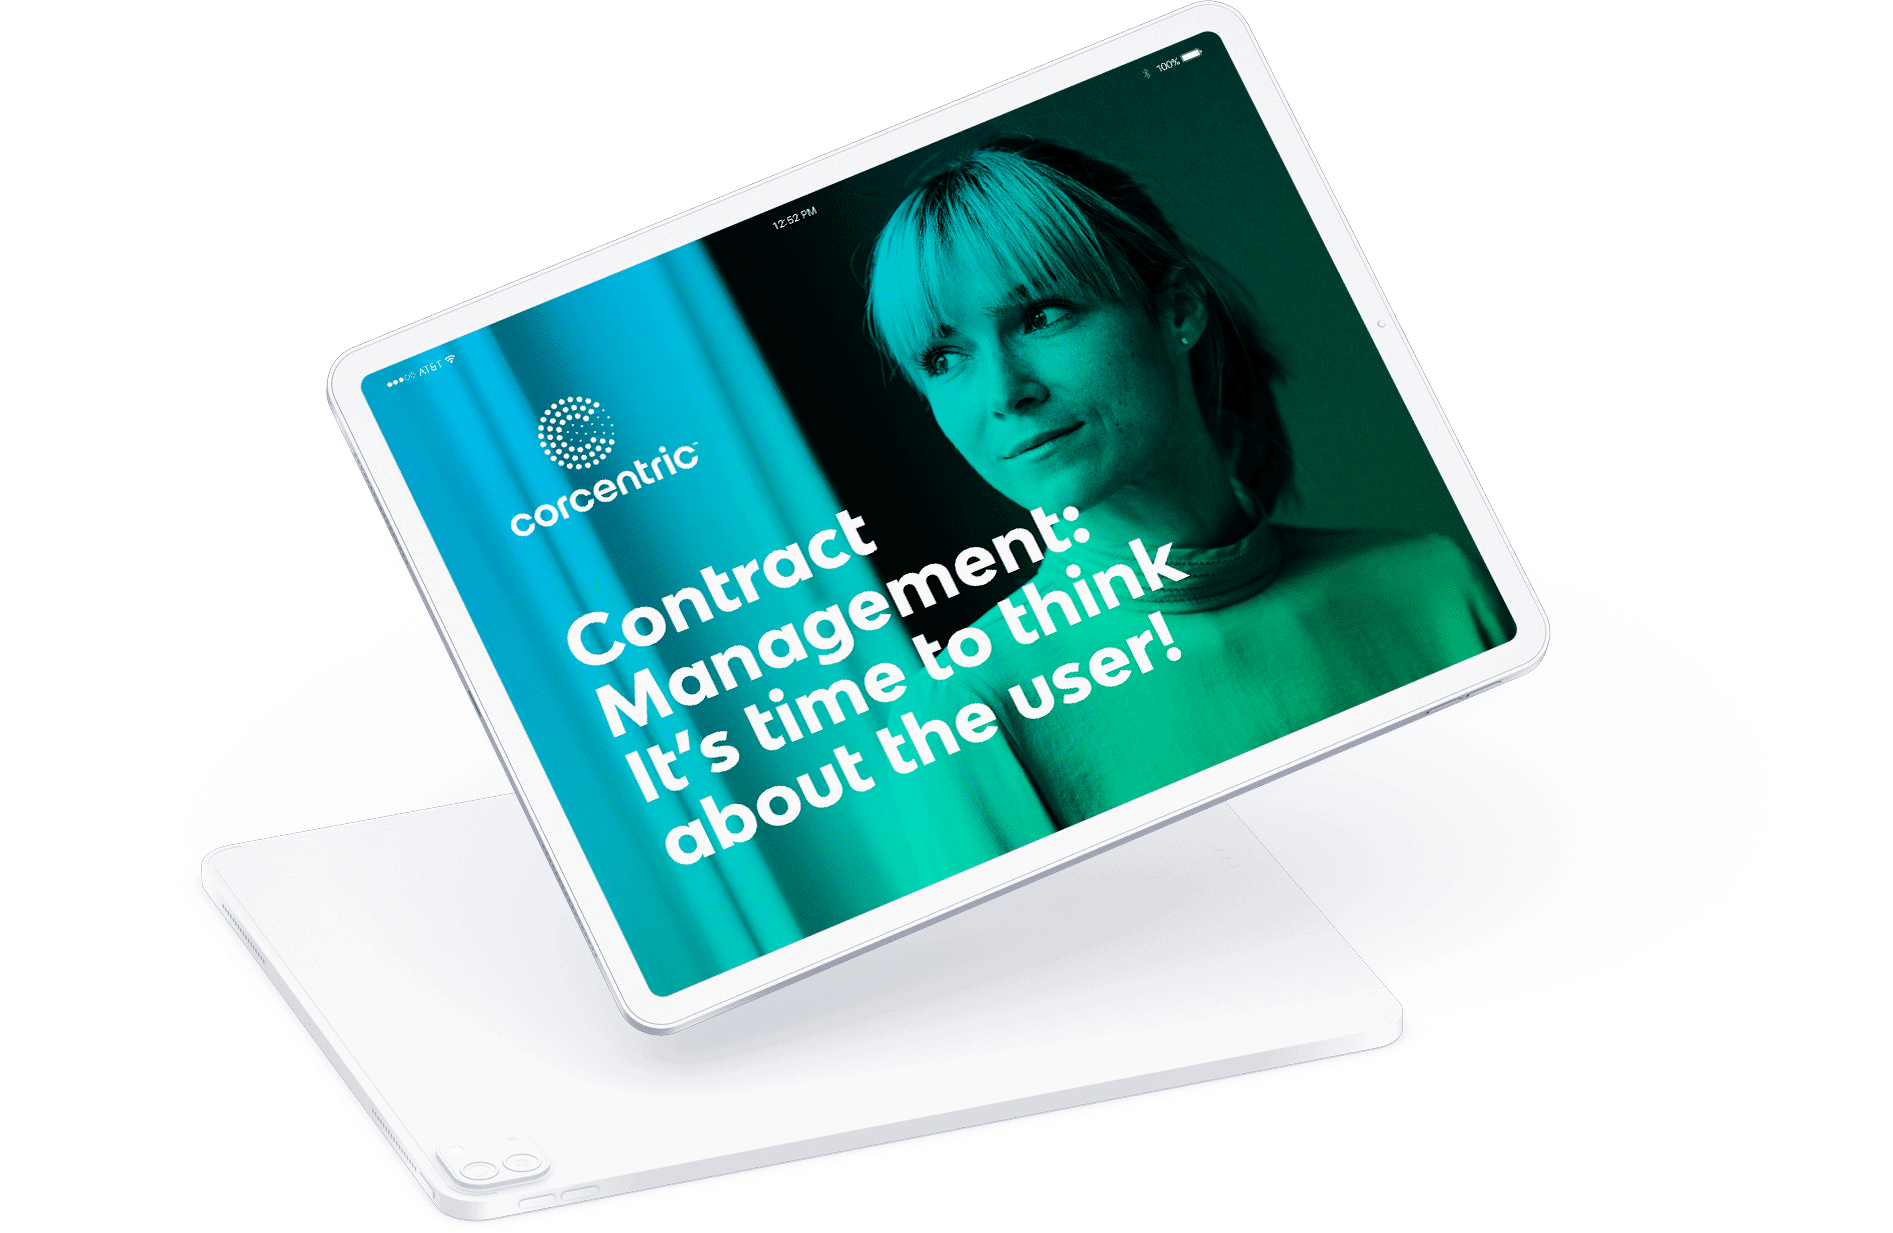 webinar-contract-management-think-about-user-asset